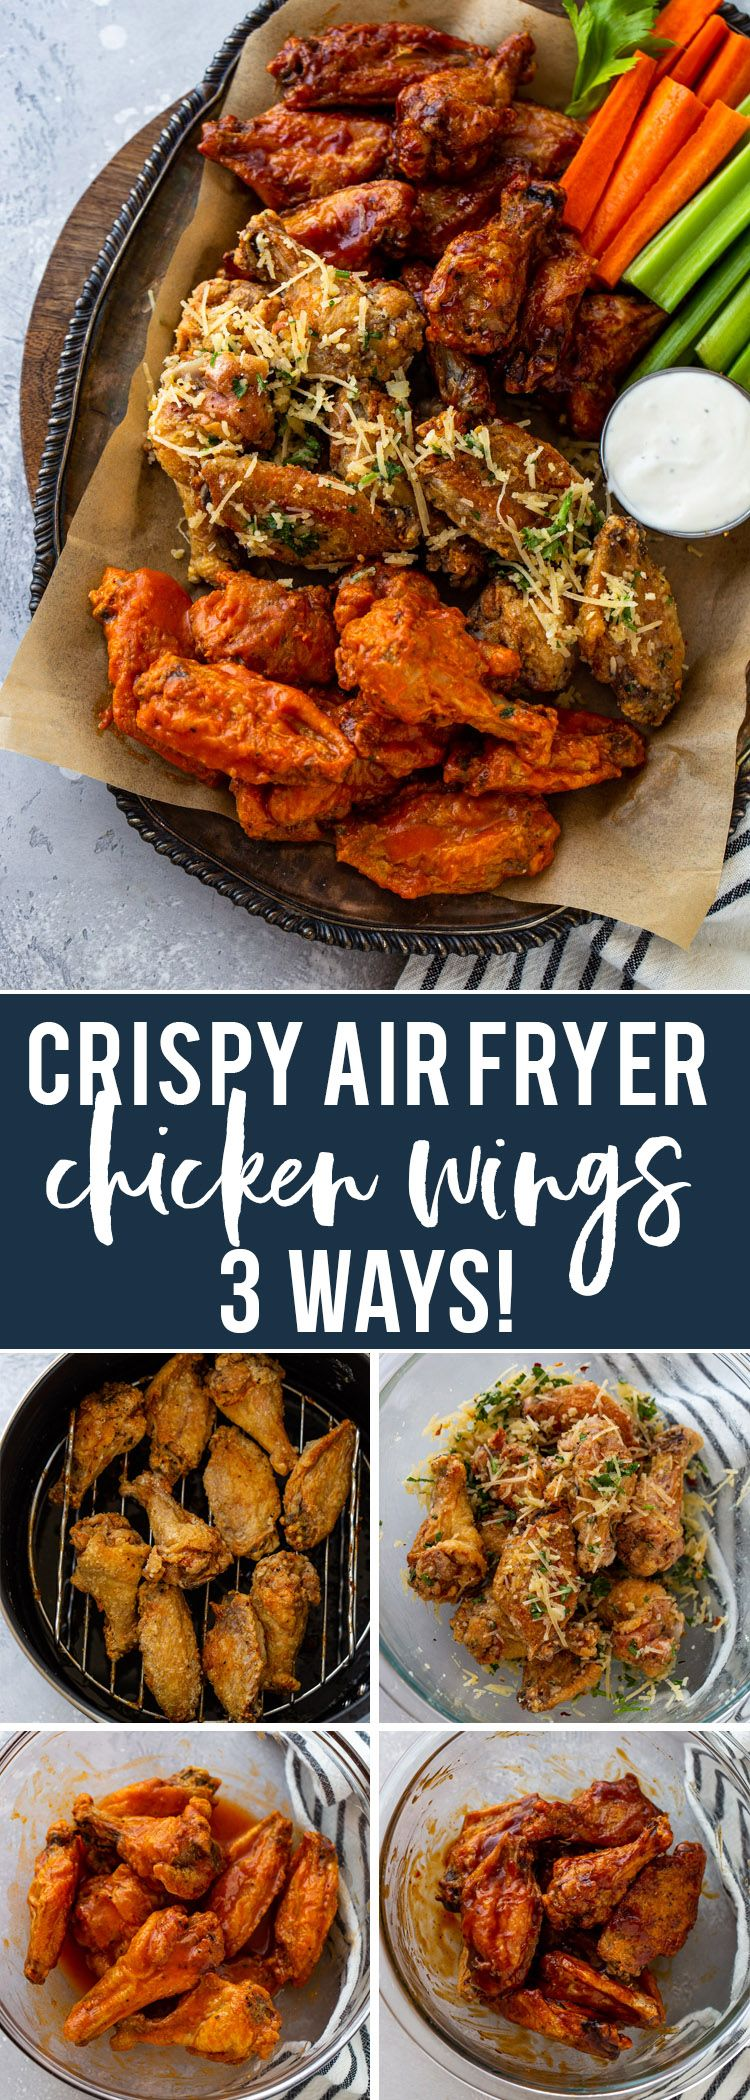 Crispy Air Fryer Chicken Wings (3 Ways!) | Gimme Delicious #airfryerrecipes